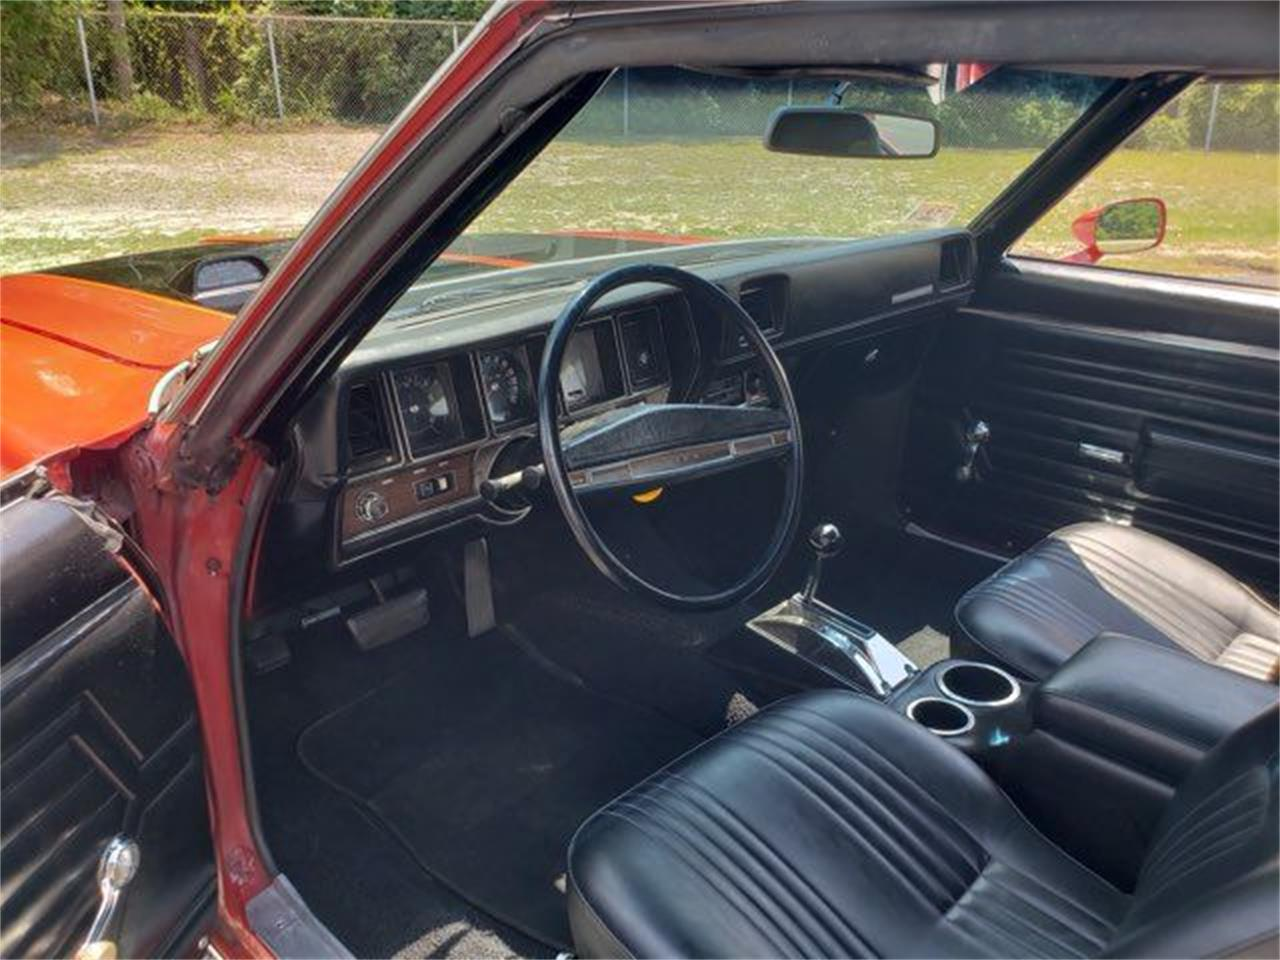 1971 Buick GSX for sale in Hope Mills, NC – photo 25